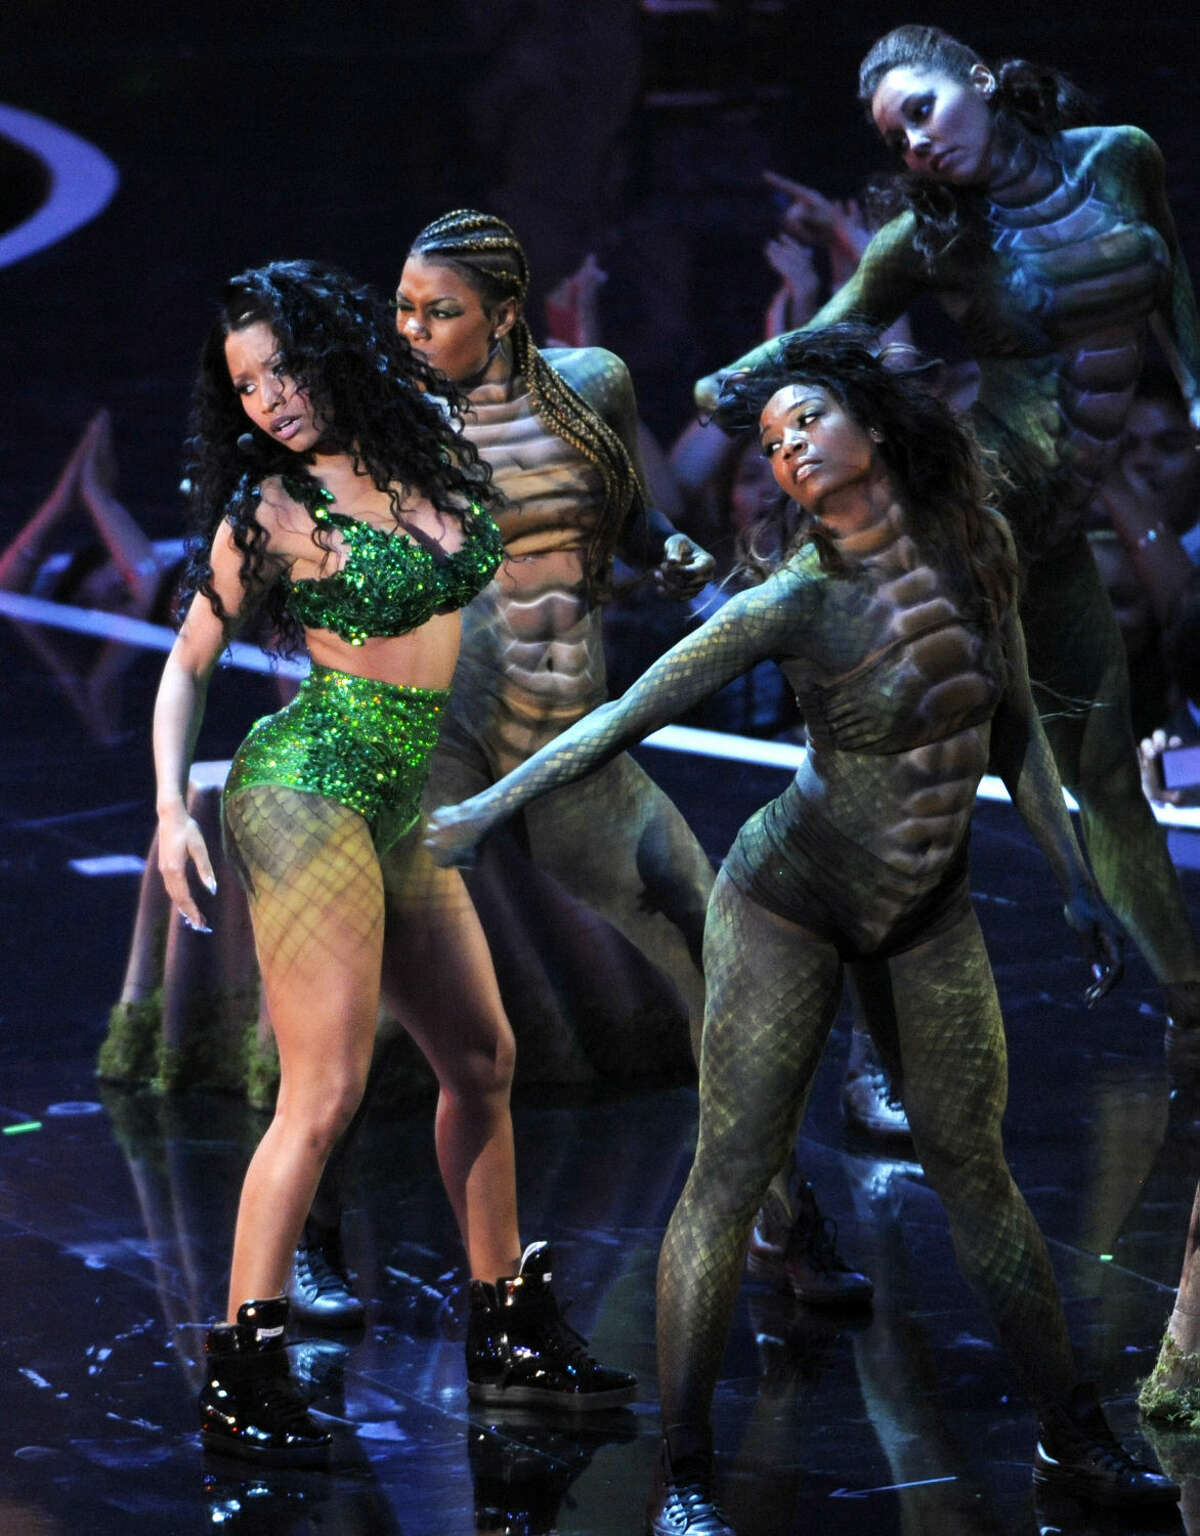 Nicki Minaj performs at the MTV Video Music Awards at The Forum on Sunday, Aug. 24, 2014, in Inglewood, Calif. (Photo by Chris Pizzello/Invision/AP)